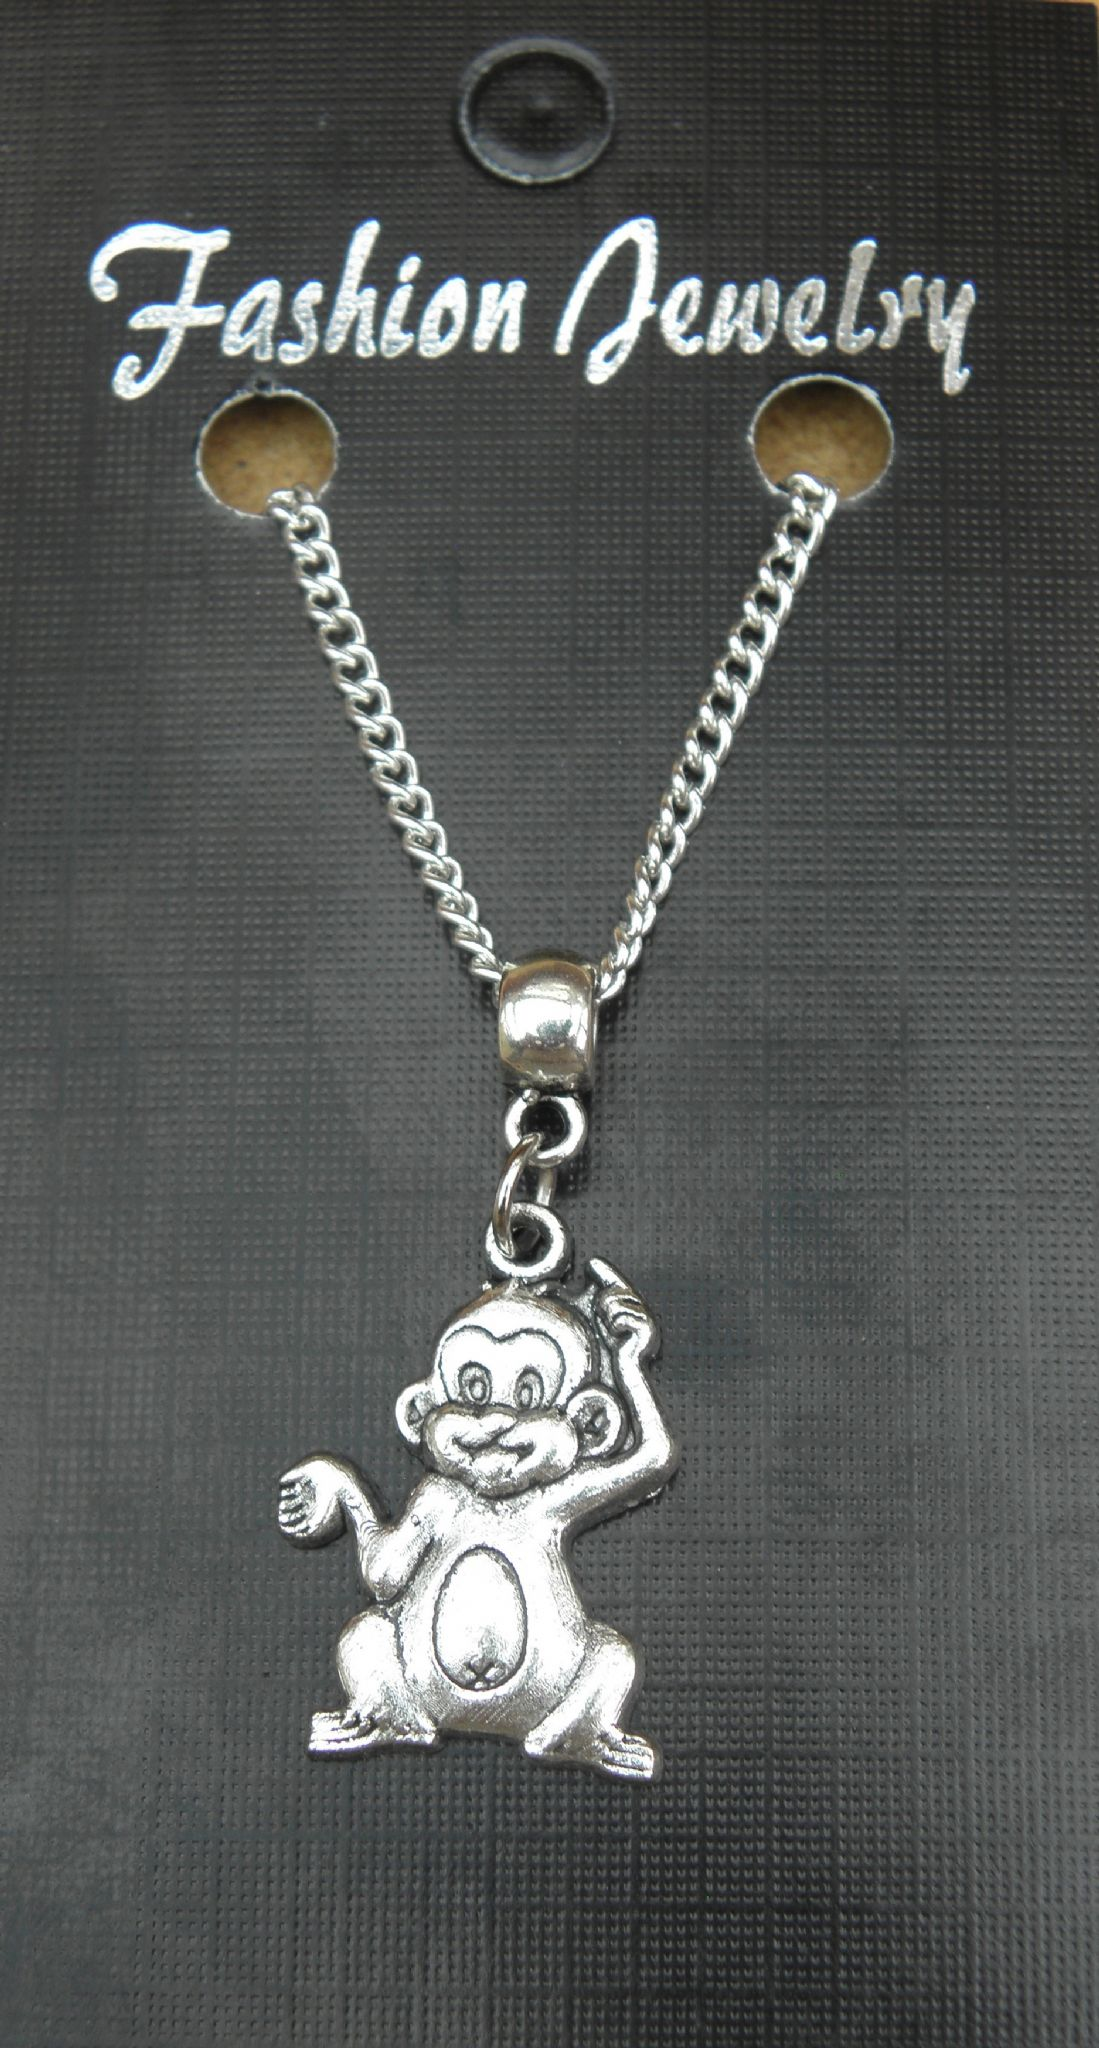 "18"" or 24 Inch Chain Necklace & Cheeky Monkey Pendant / Charm - Primate Gift"